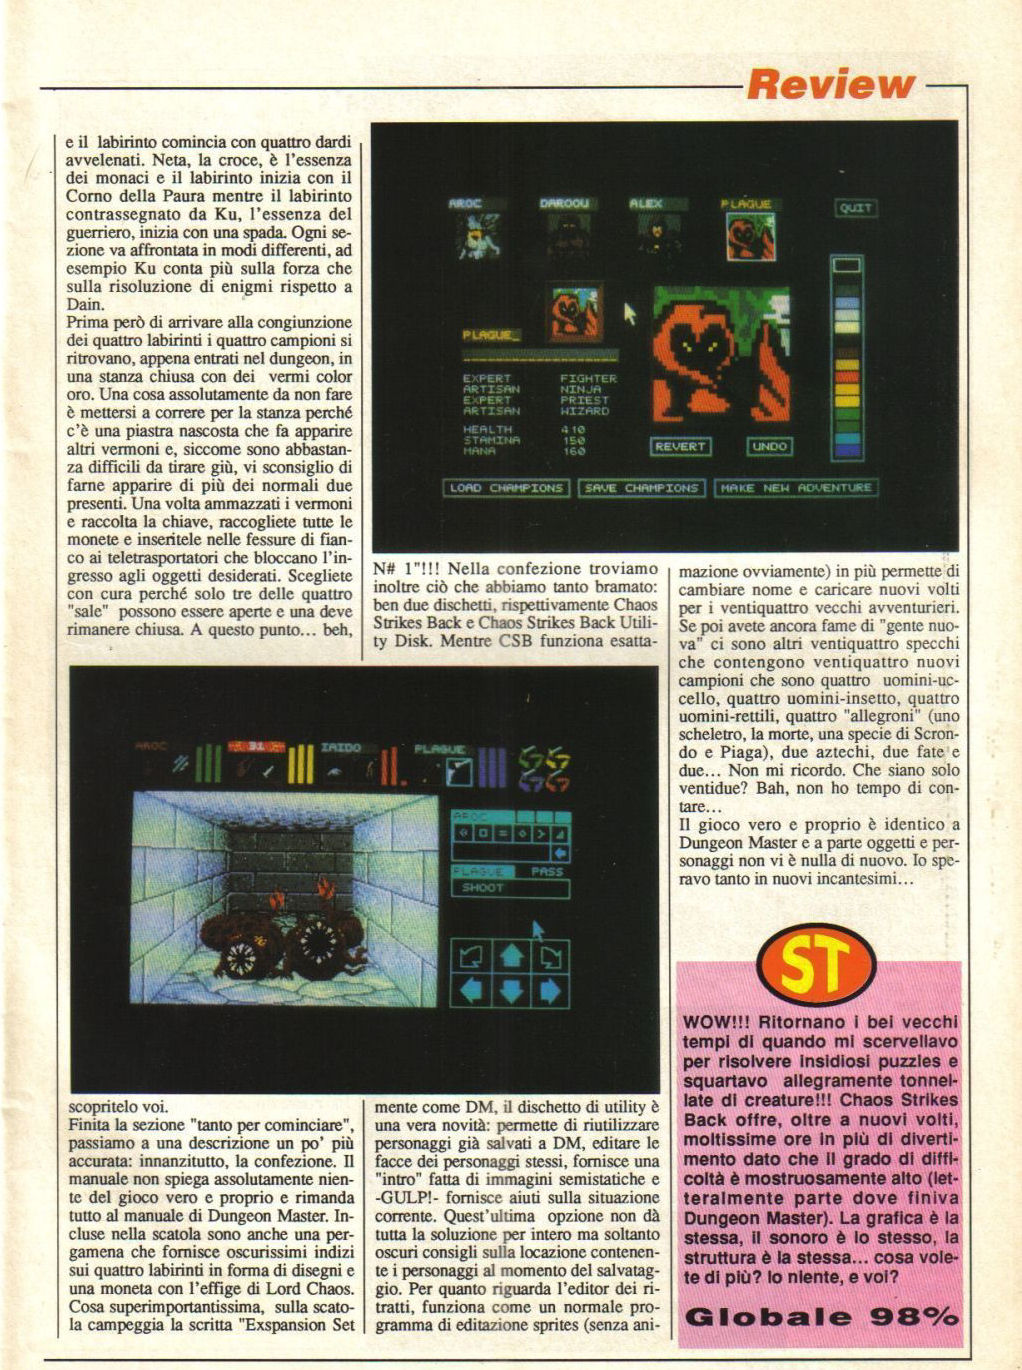 Chaos Strikes Back for Atari ST Review published in Italian magazine 'The Game Machine', Issue #18, March 1990, Page 25